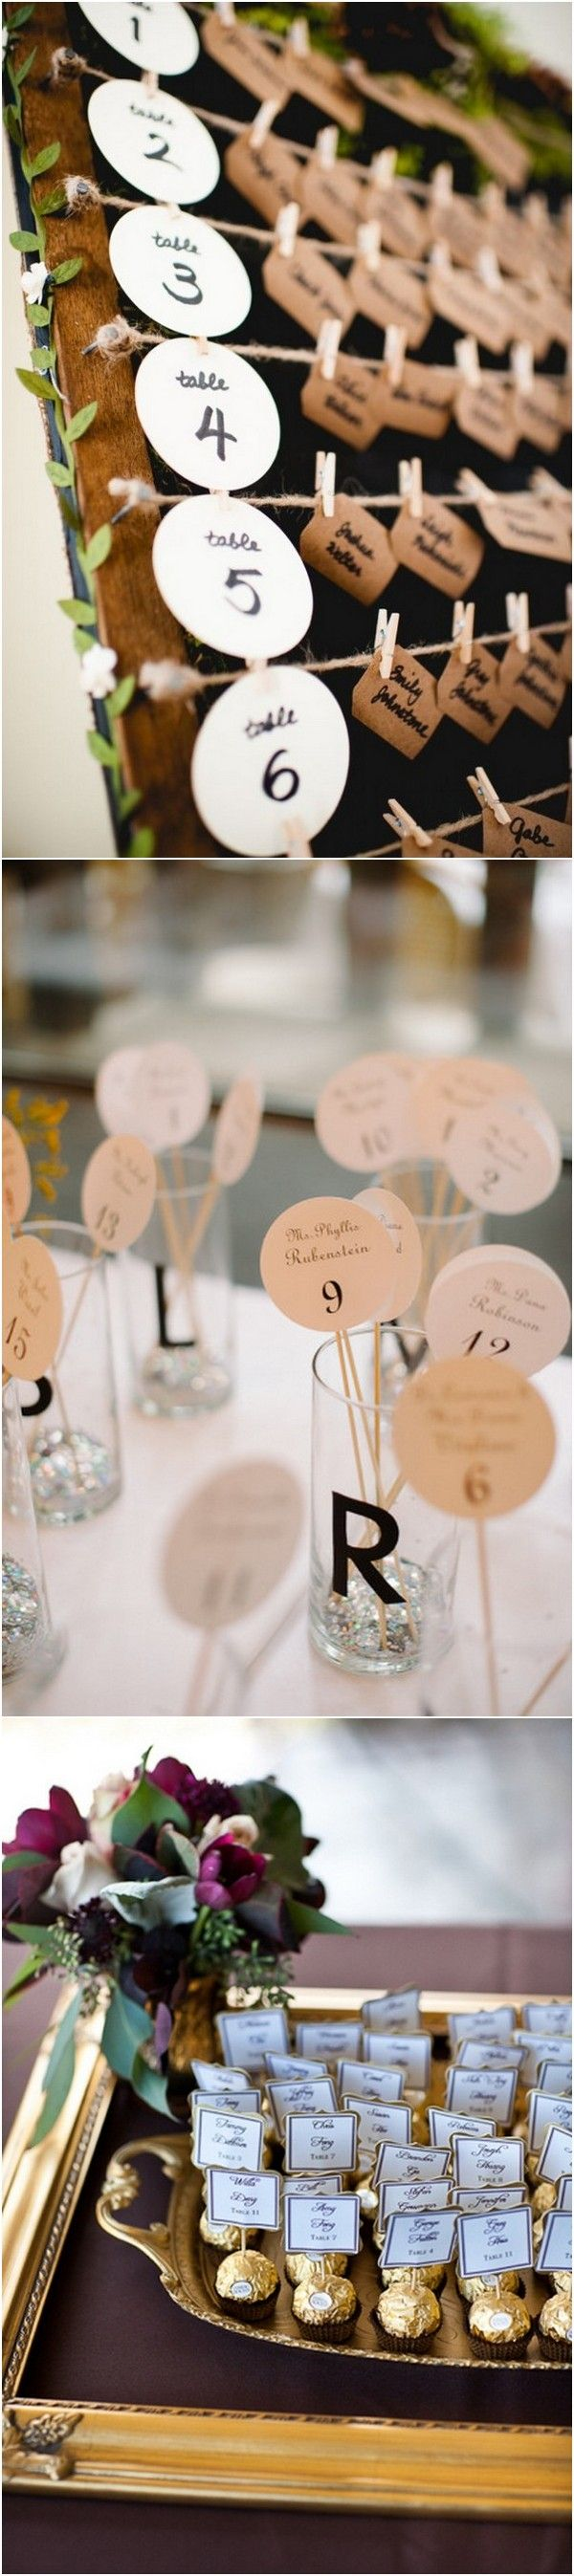 185 Best Wedding Place Cards Sitting Chart Images On Pinterest